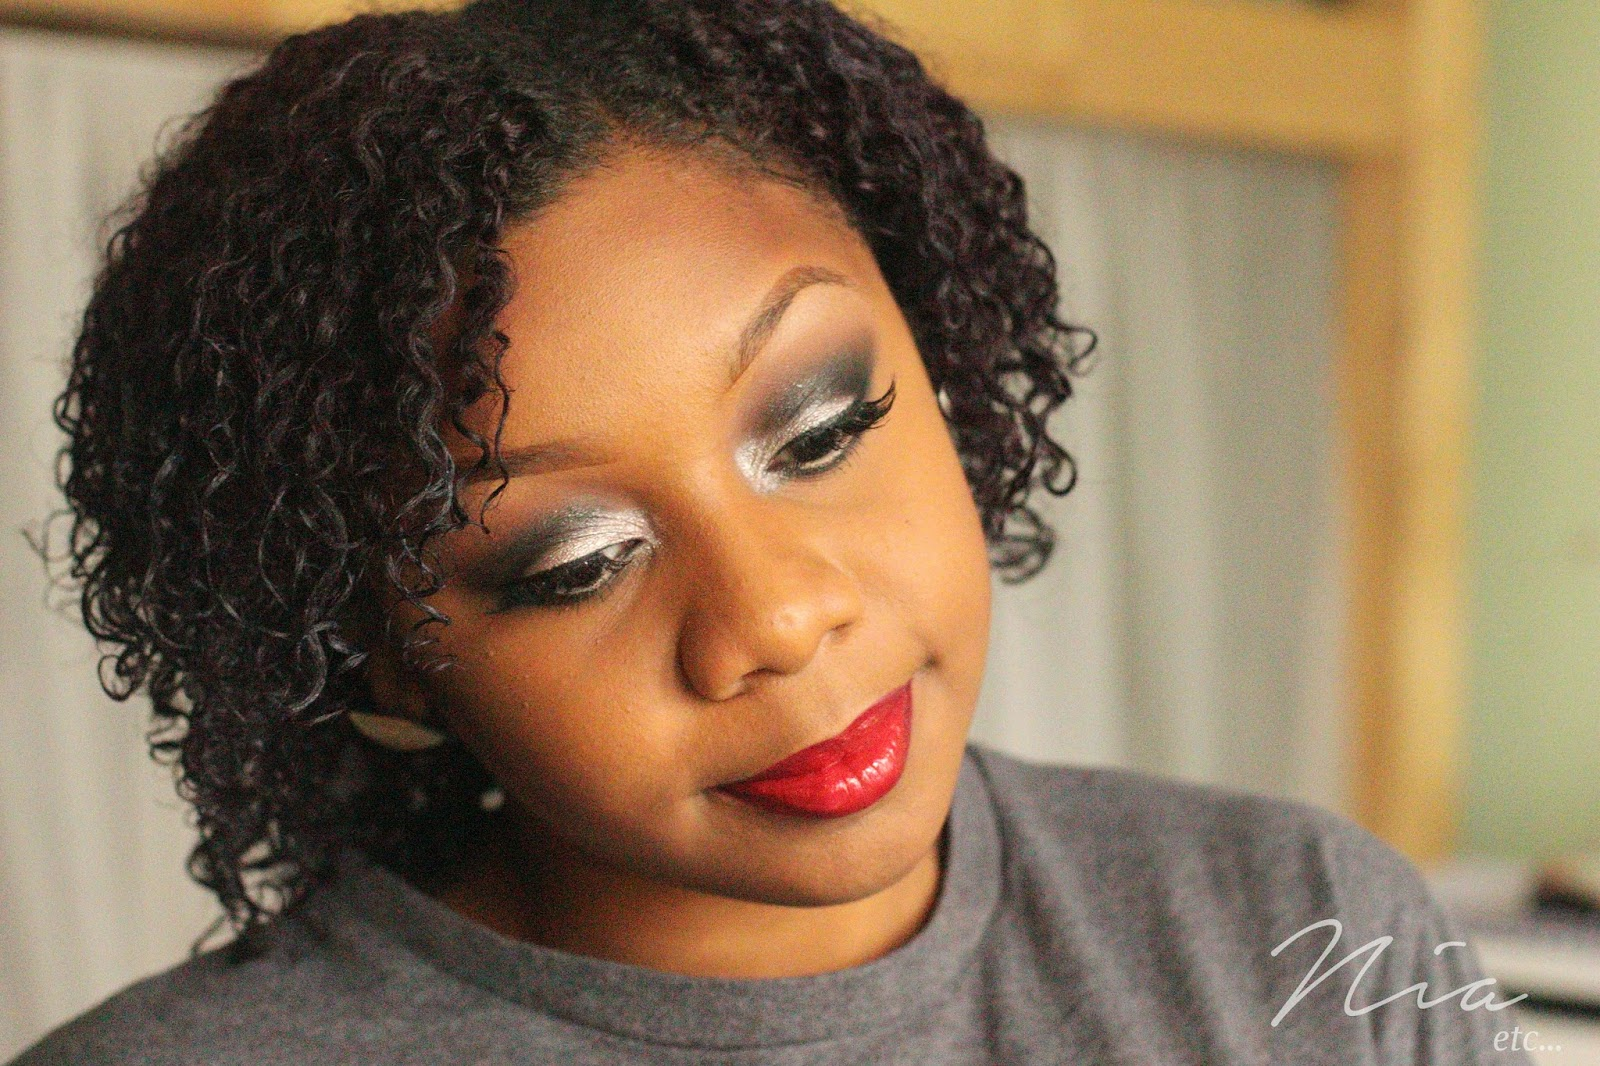 Classic Glamour Look with Bold Cut Crease and Red Lipstick 5